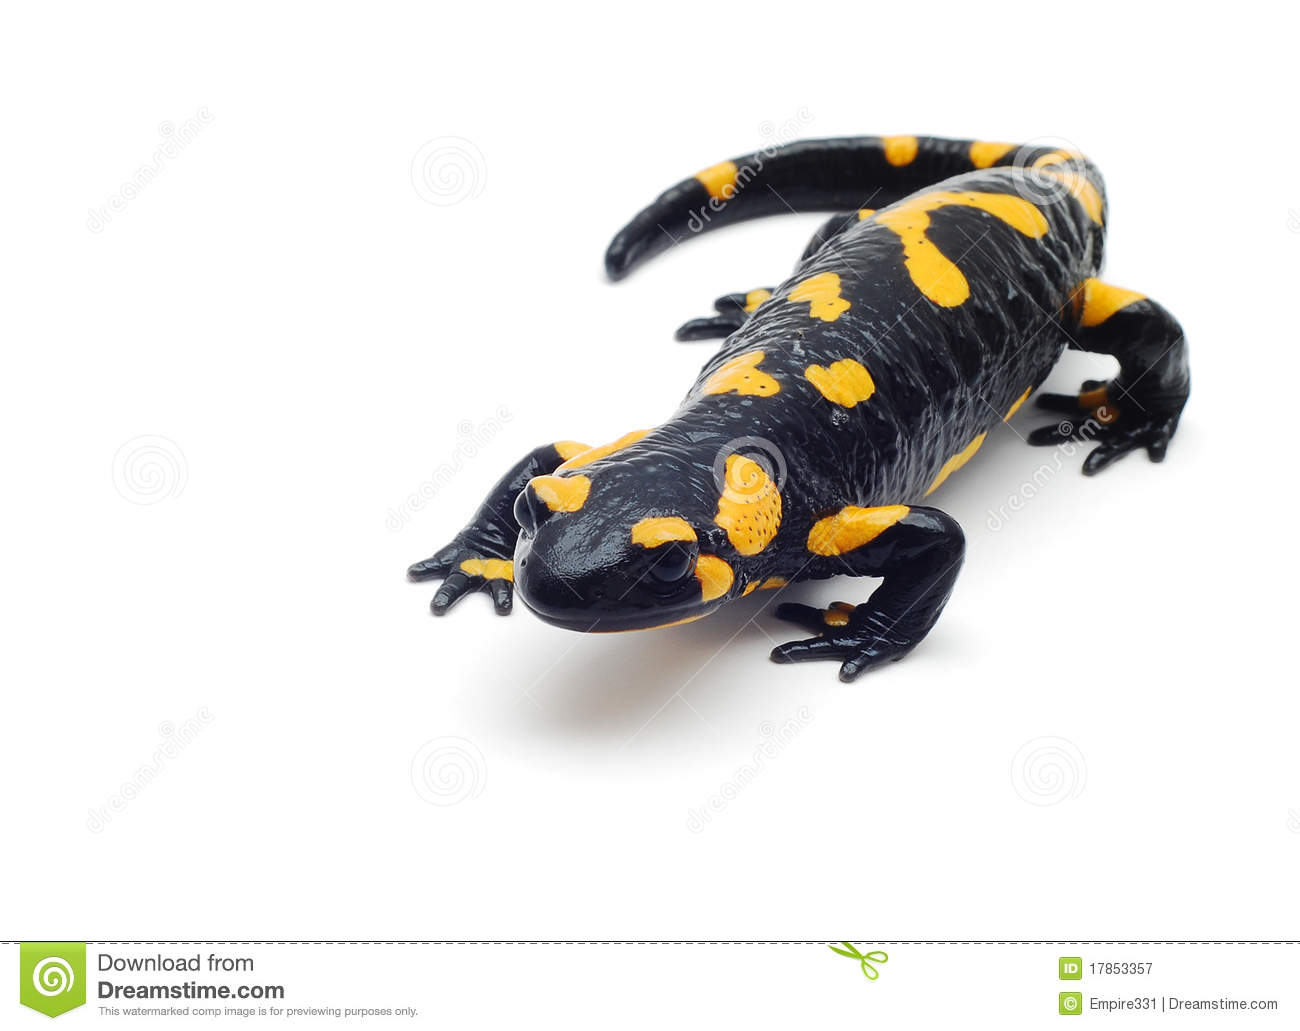 salamander royalty free stock photography image 17853357 Dog Clip Art Dog Clip Art